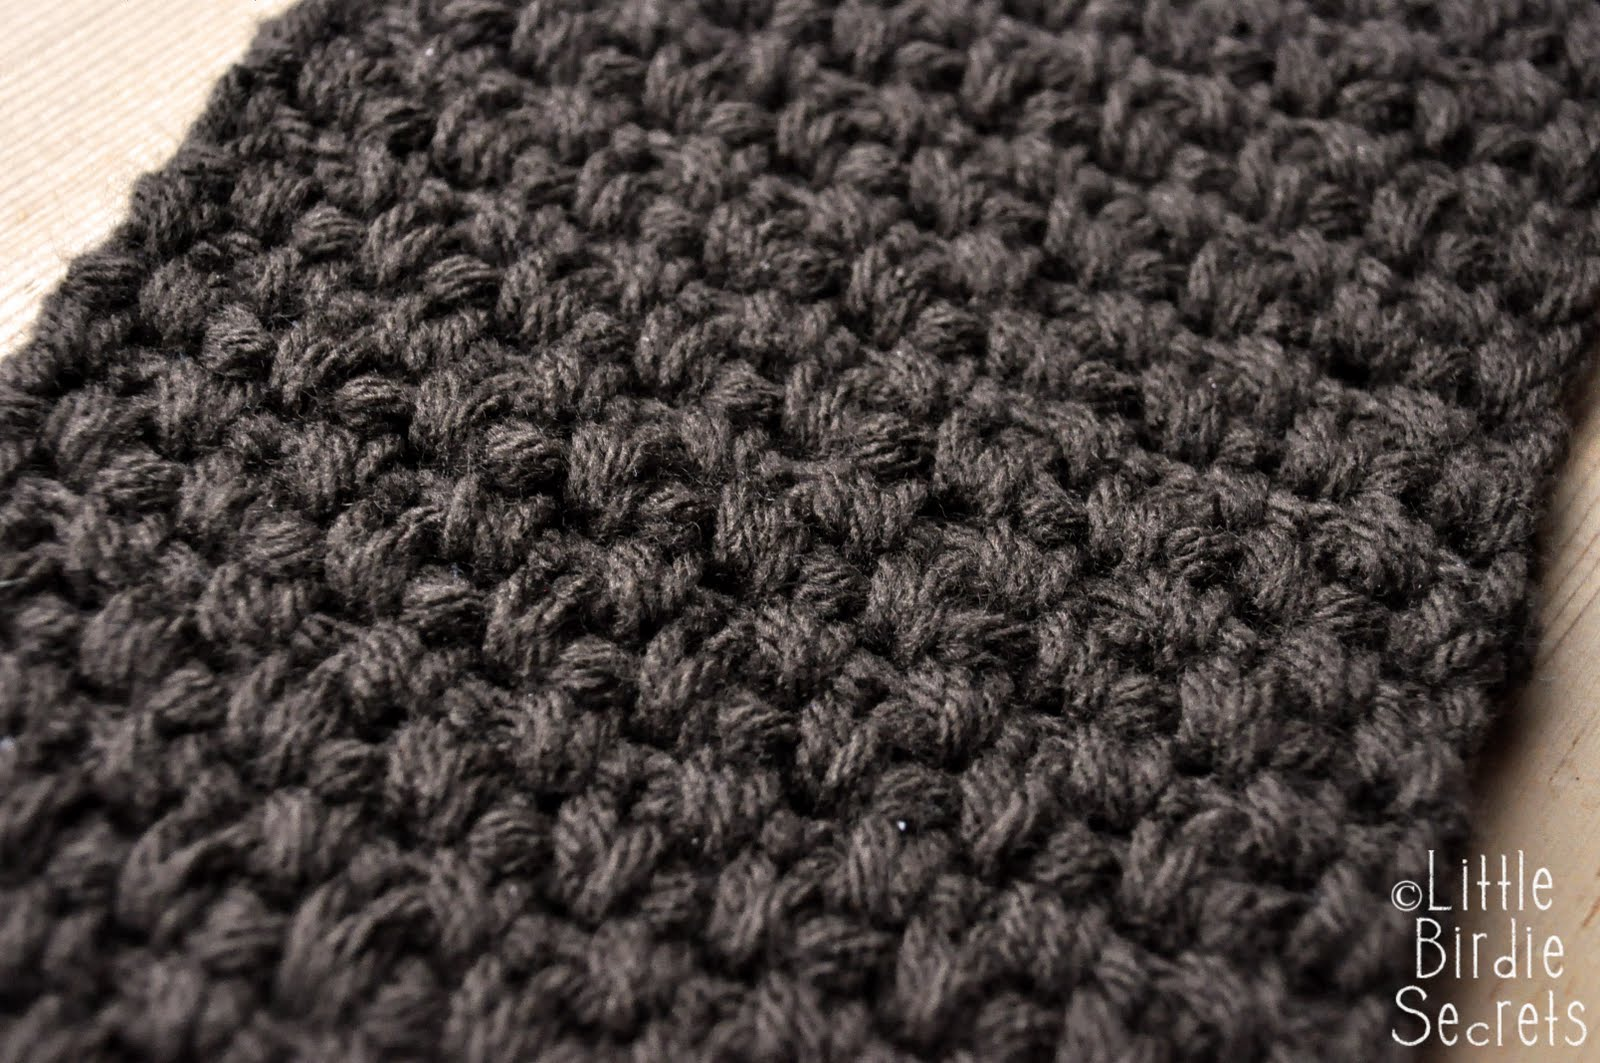 Crochet Stitches Moss Stitch : Rows 2 - 56: Continue moss st: Sk 1st sc, *sc in ch-1 sp, ch 1, sk ...